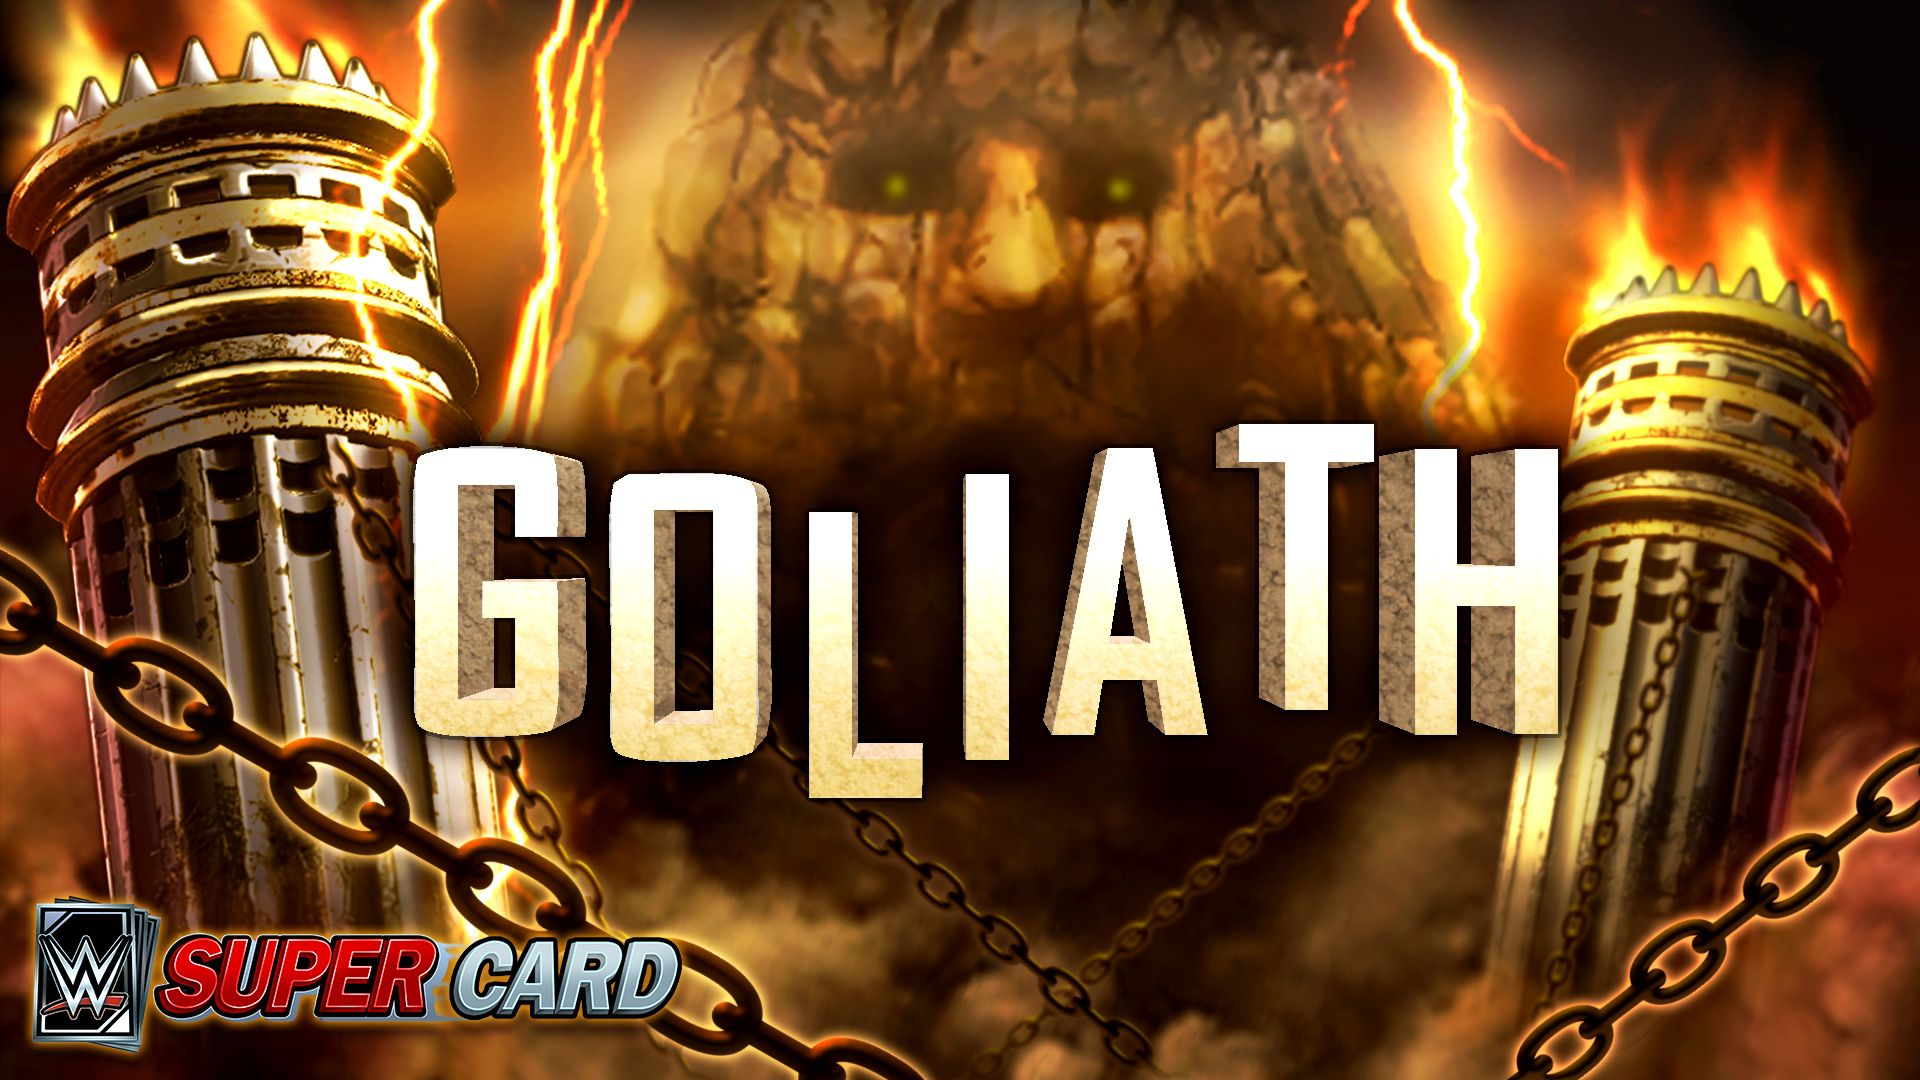 WWE SuperCard unveils Goliath Tier in new update, Bobby Lashley debuts